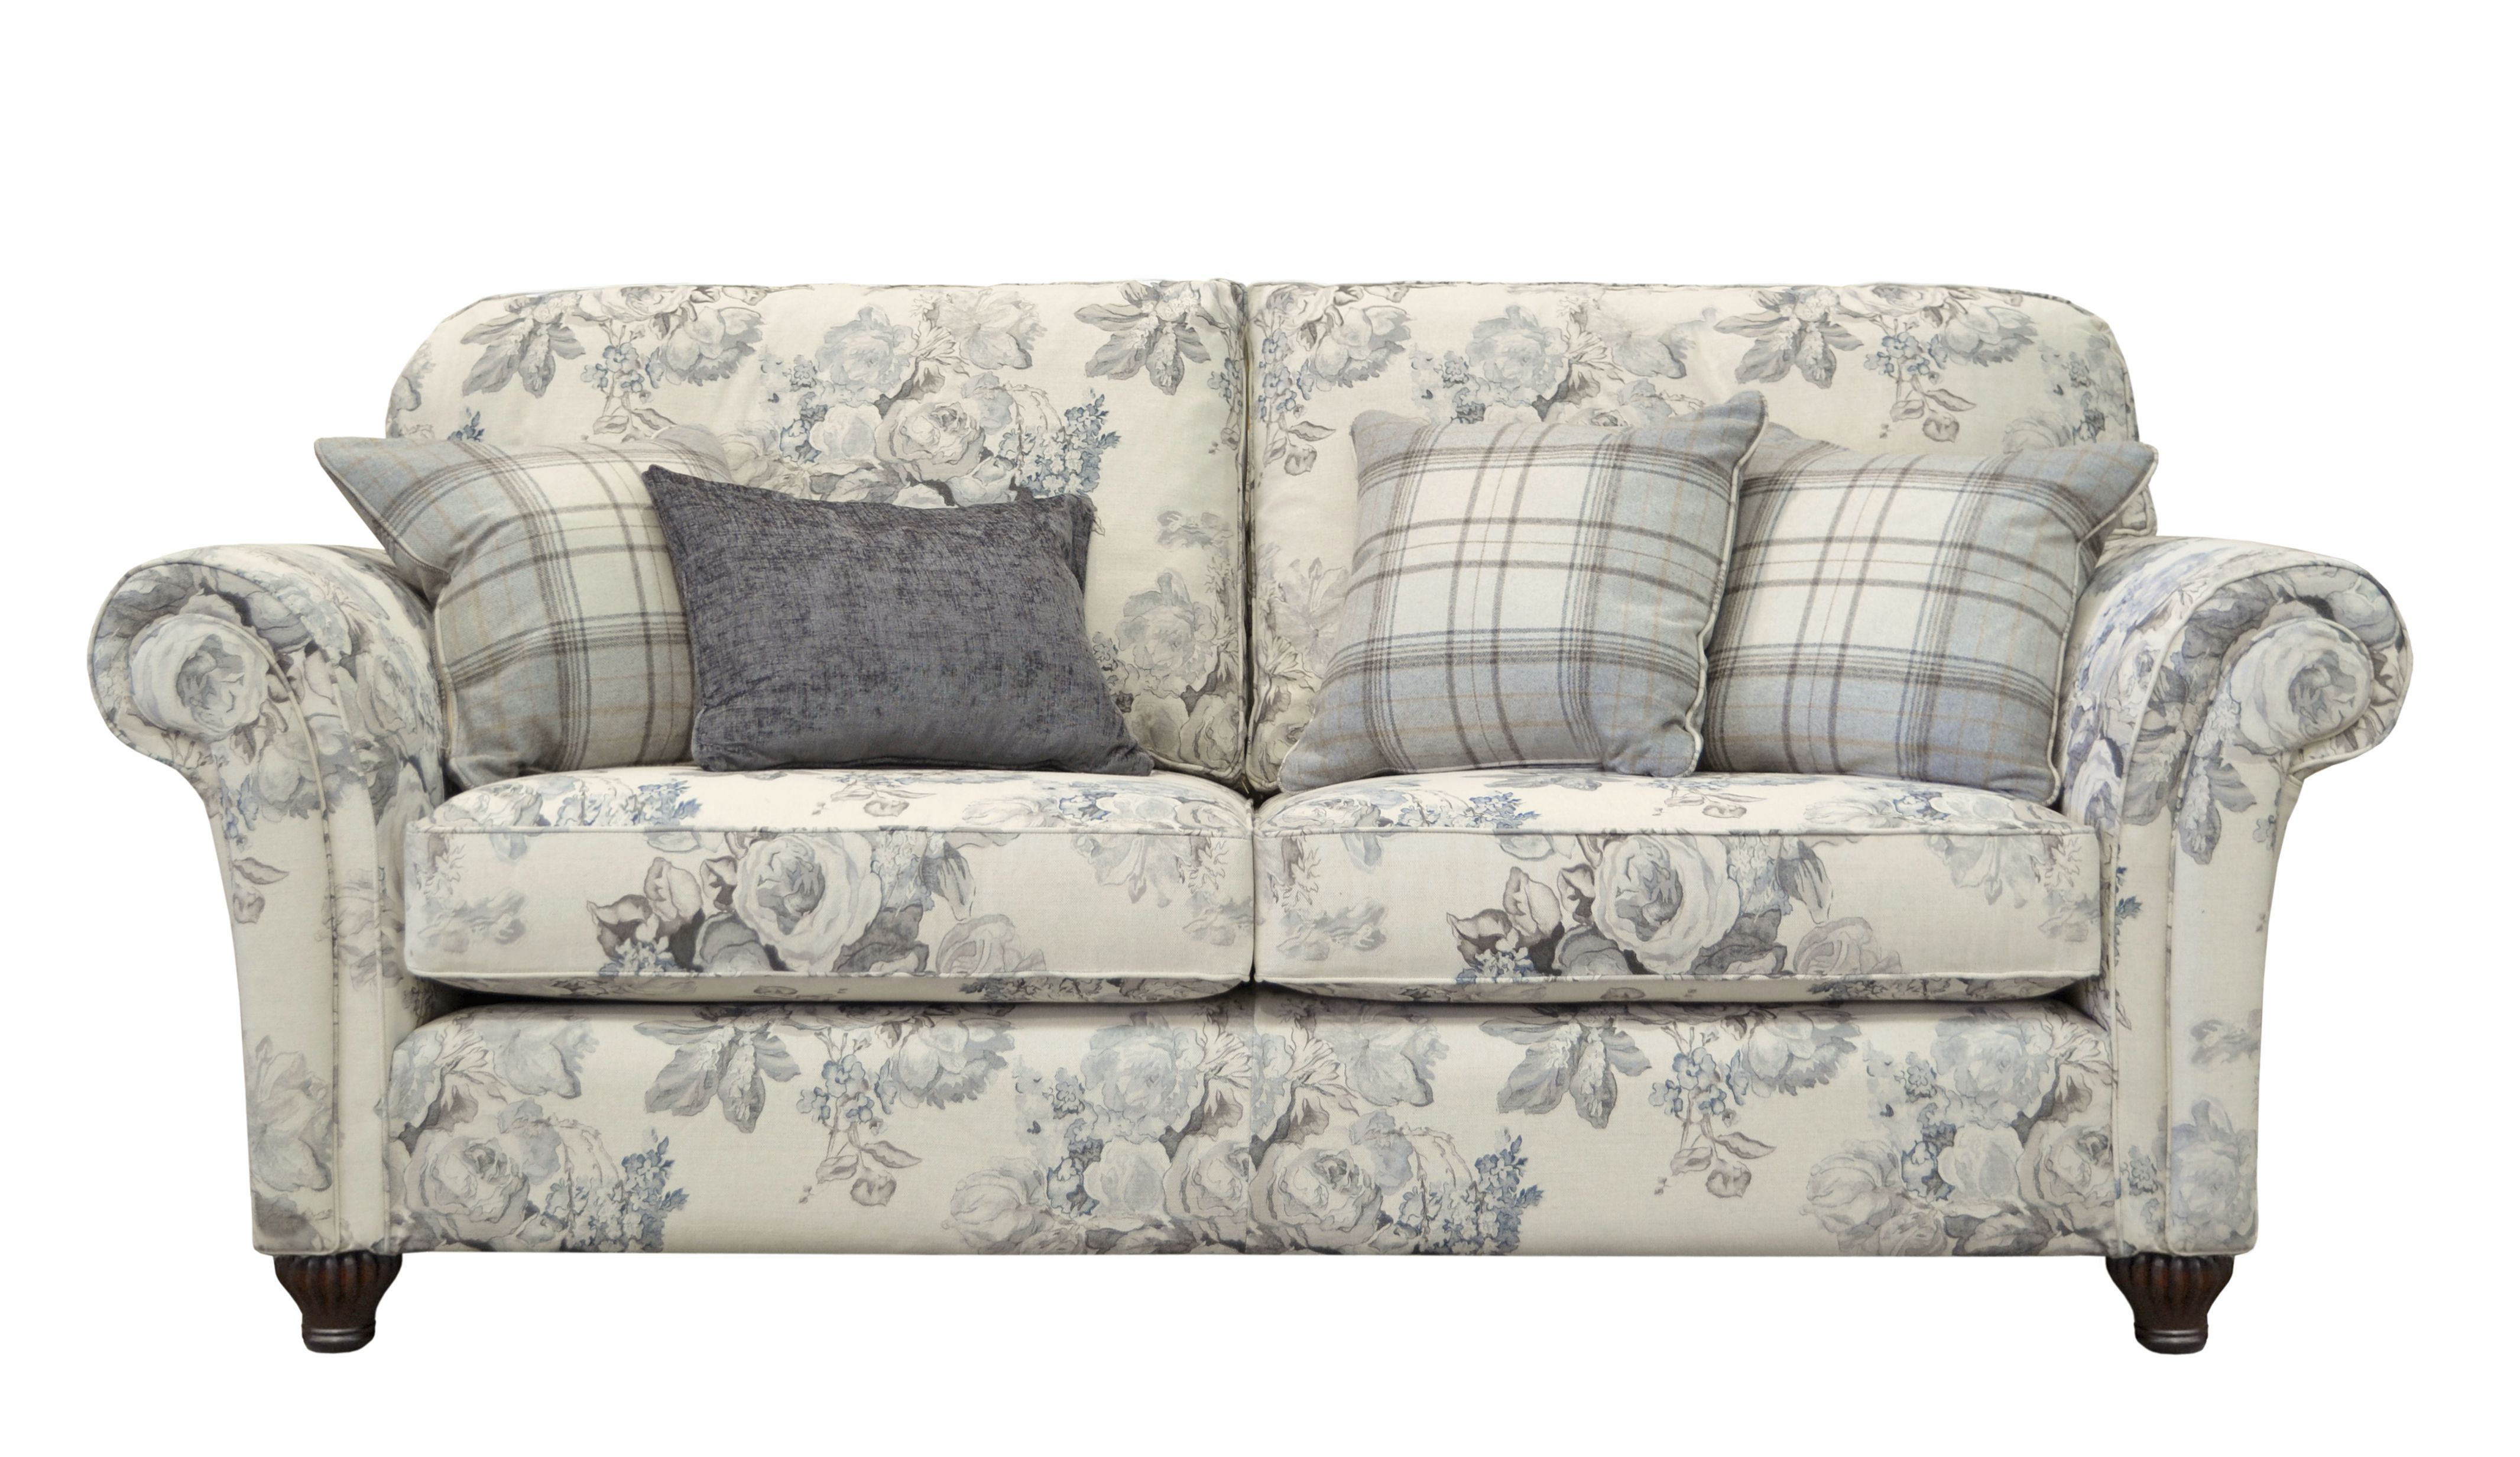 Pinholly Furney On I Love Interior Design! | Pinterest | Sofa Intended For Tate Ii Sofa Chairs (Image 15 of 25)